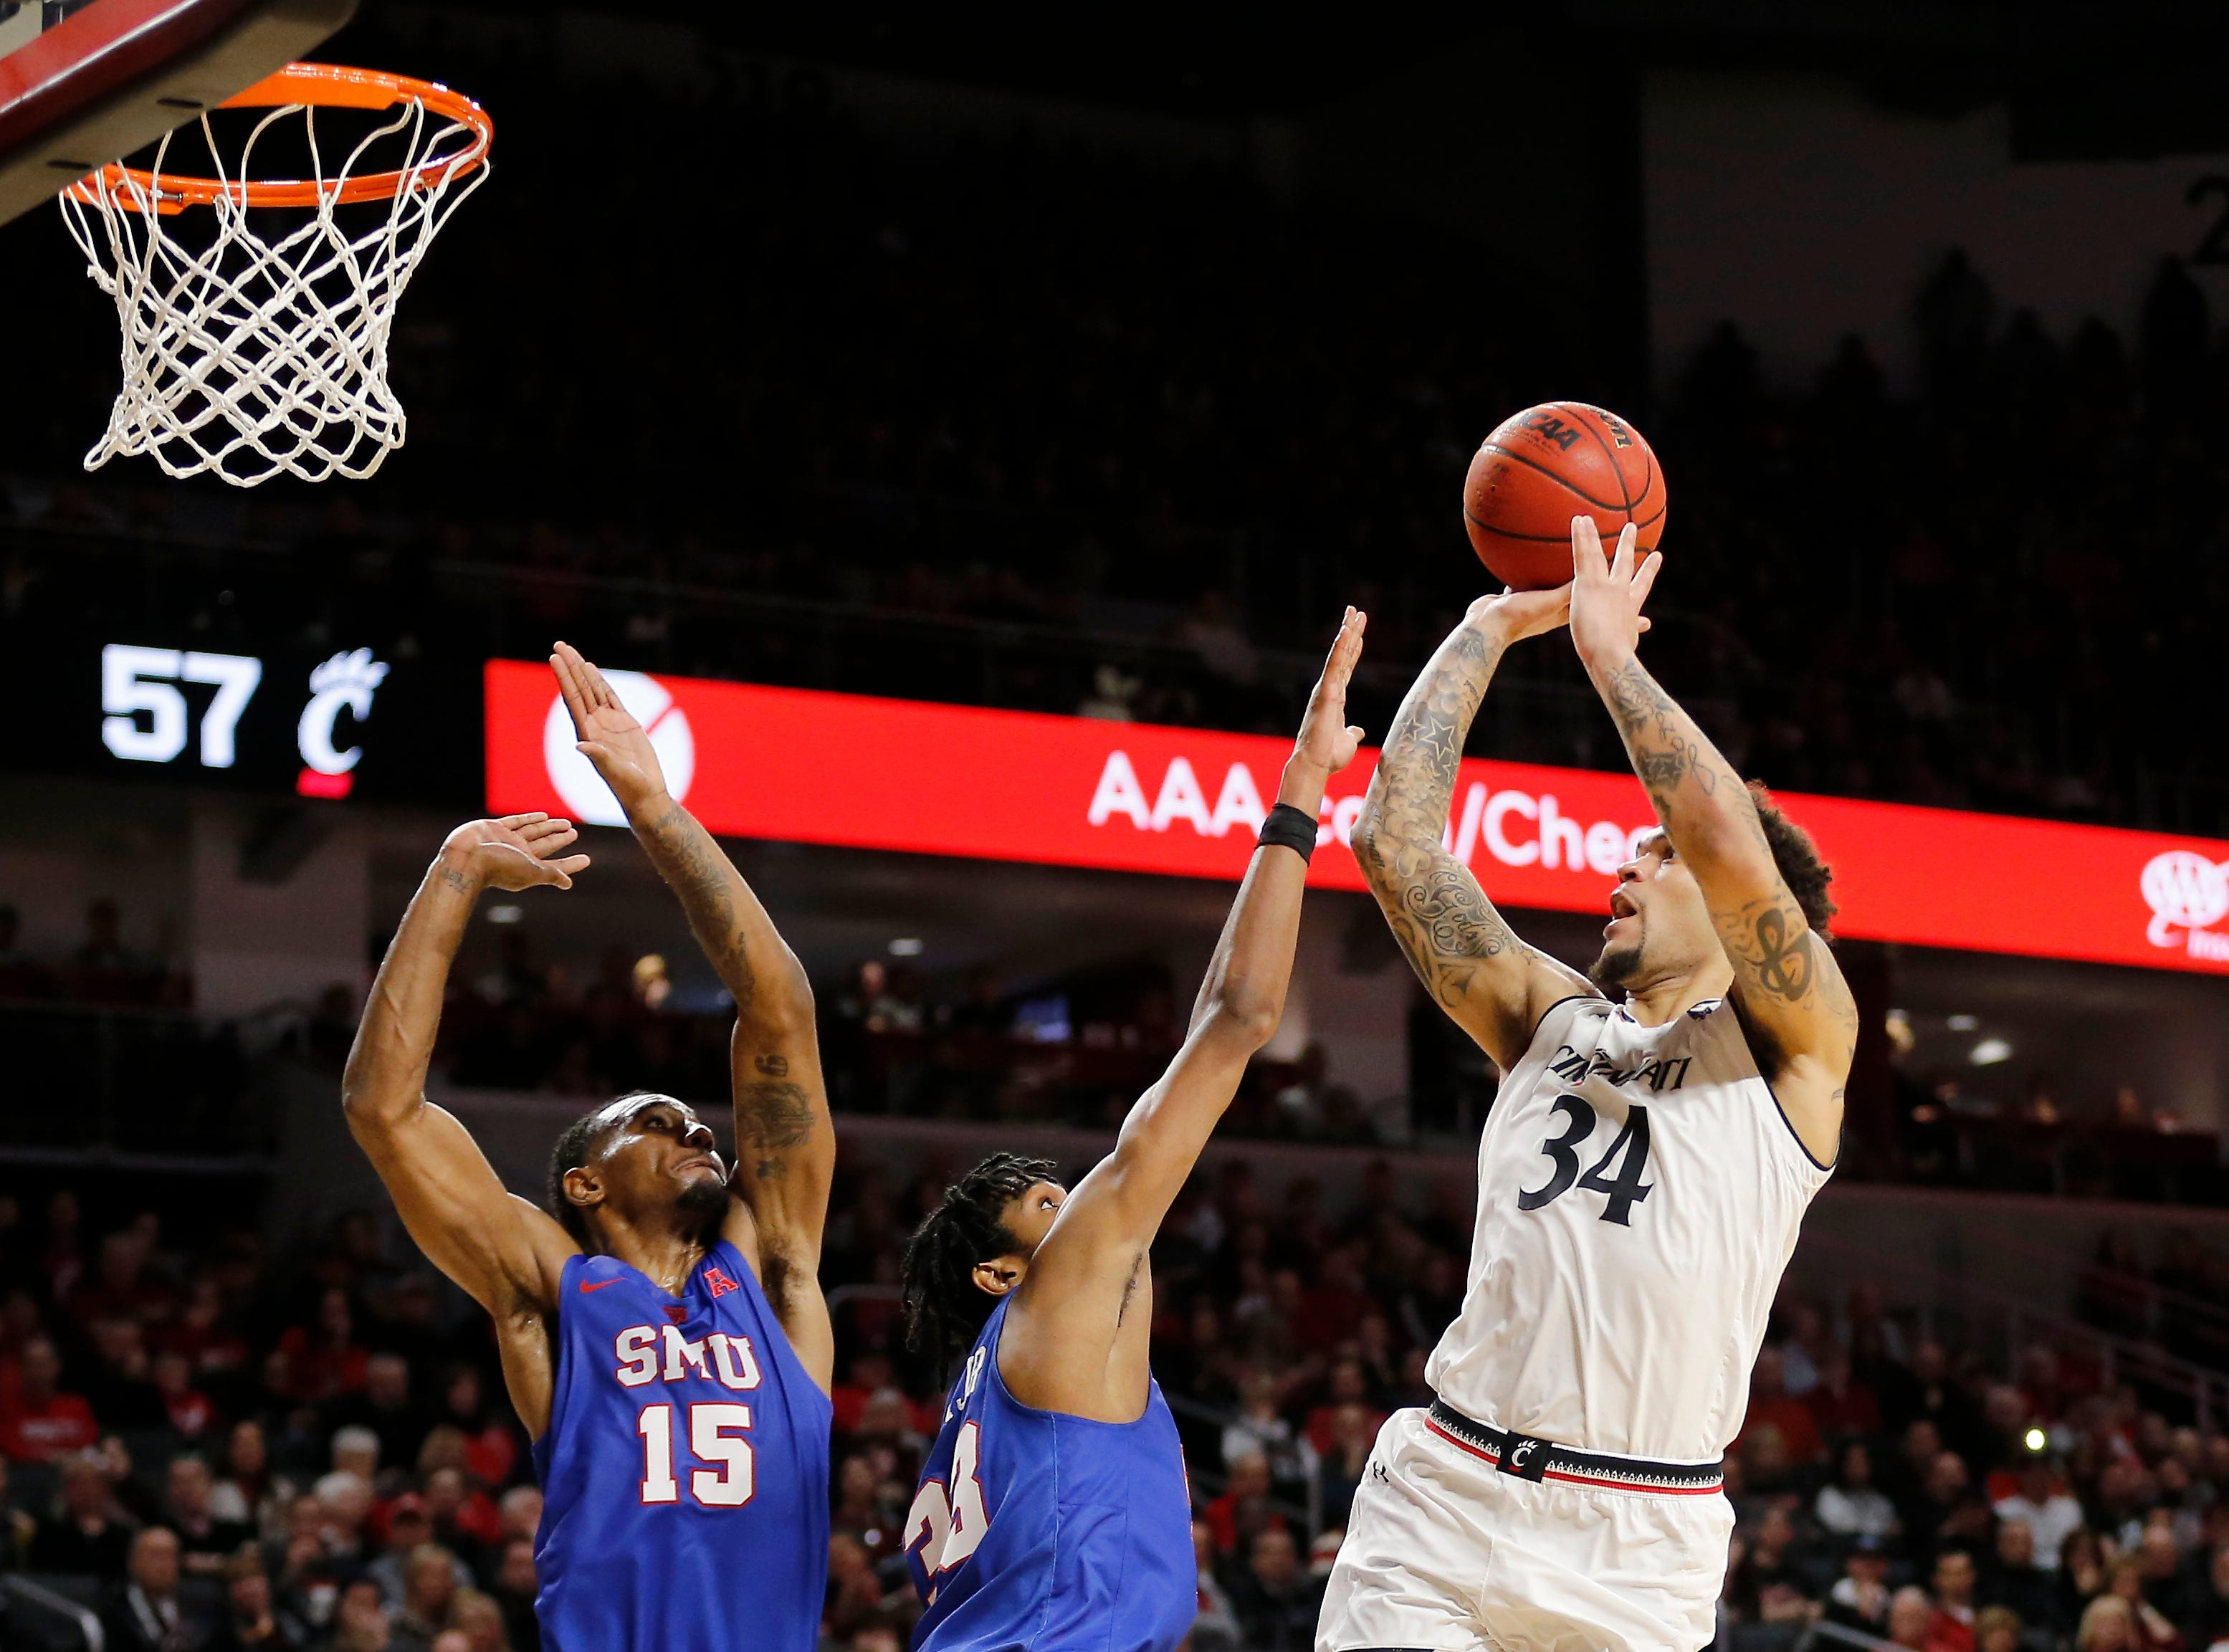 Cincinnati Bearcats guard Jarron Cumberland (34) floats a shot in the second half the the NCAA American Athletic Conference basketball game between the Cincinnati Bearcats and the Southern Methodist Mustangs at Fifth Third Arena in Cincinnati on Saturday, Feb. 2, 2019. The Bearcats edged out SMU for a 73-68 win.